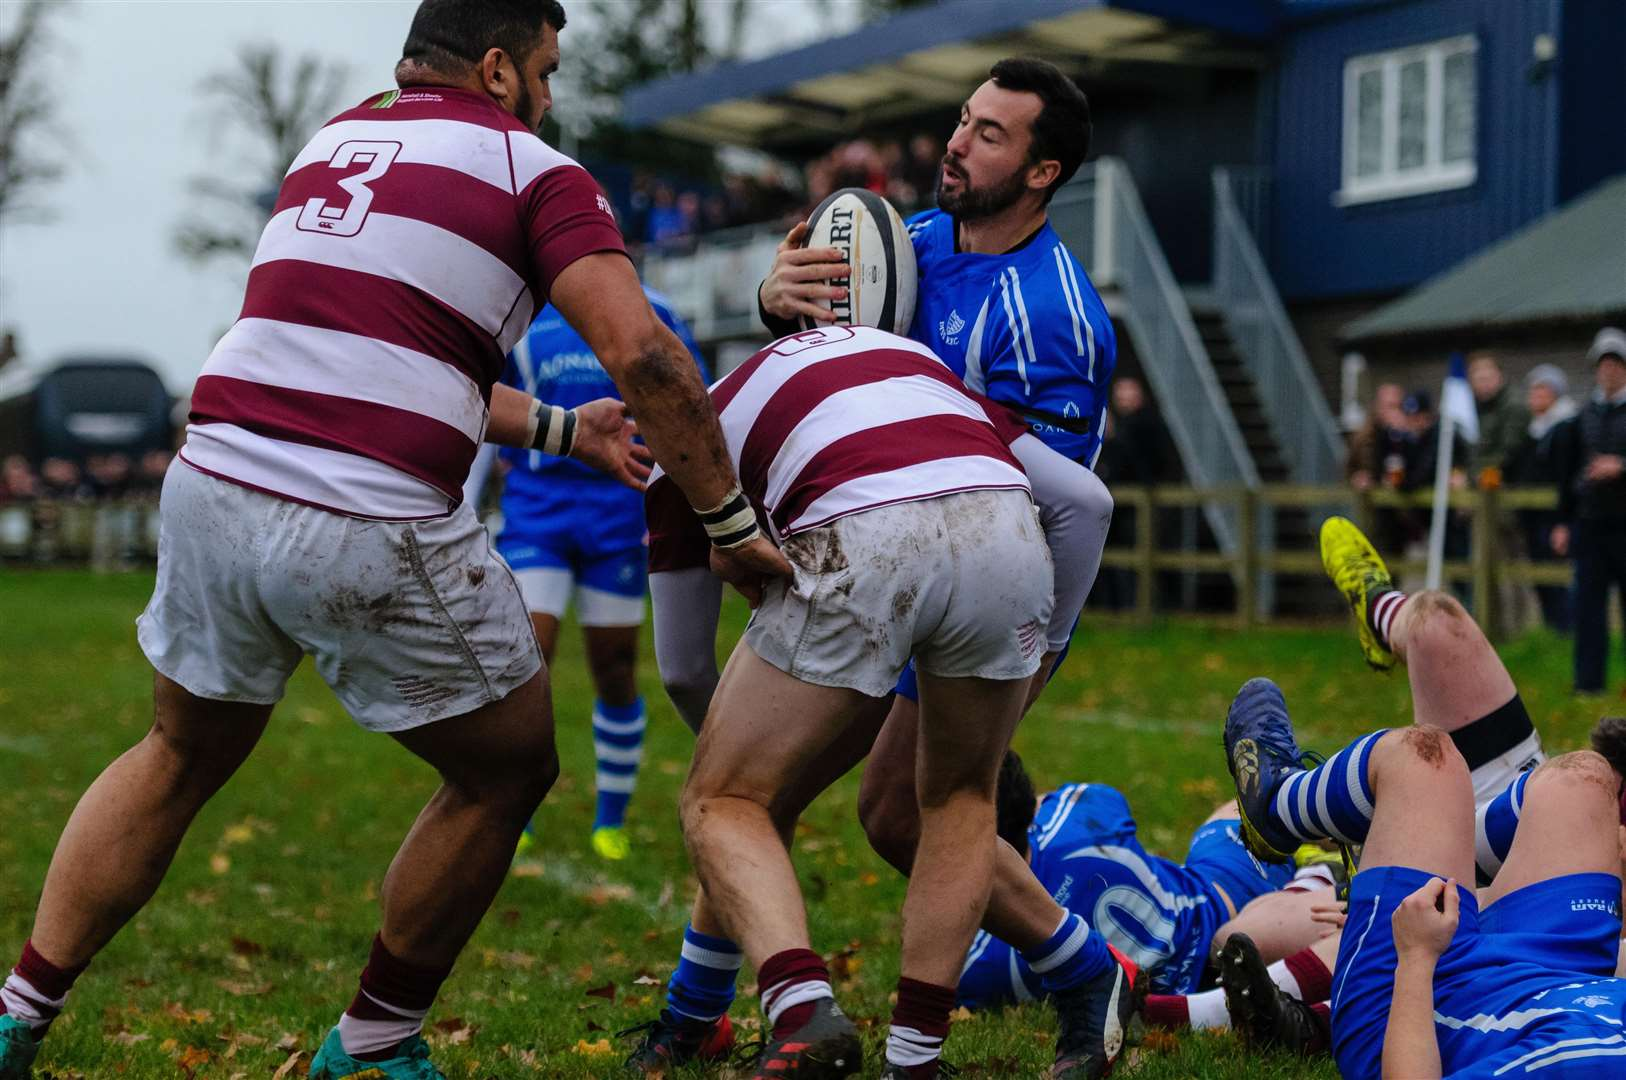 Rugby action from Diss v Ruislip - Marco Mongia..Picture by Mark Bullimore Photography. (5873089)